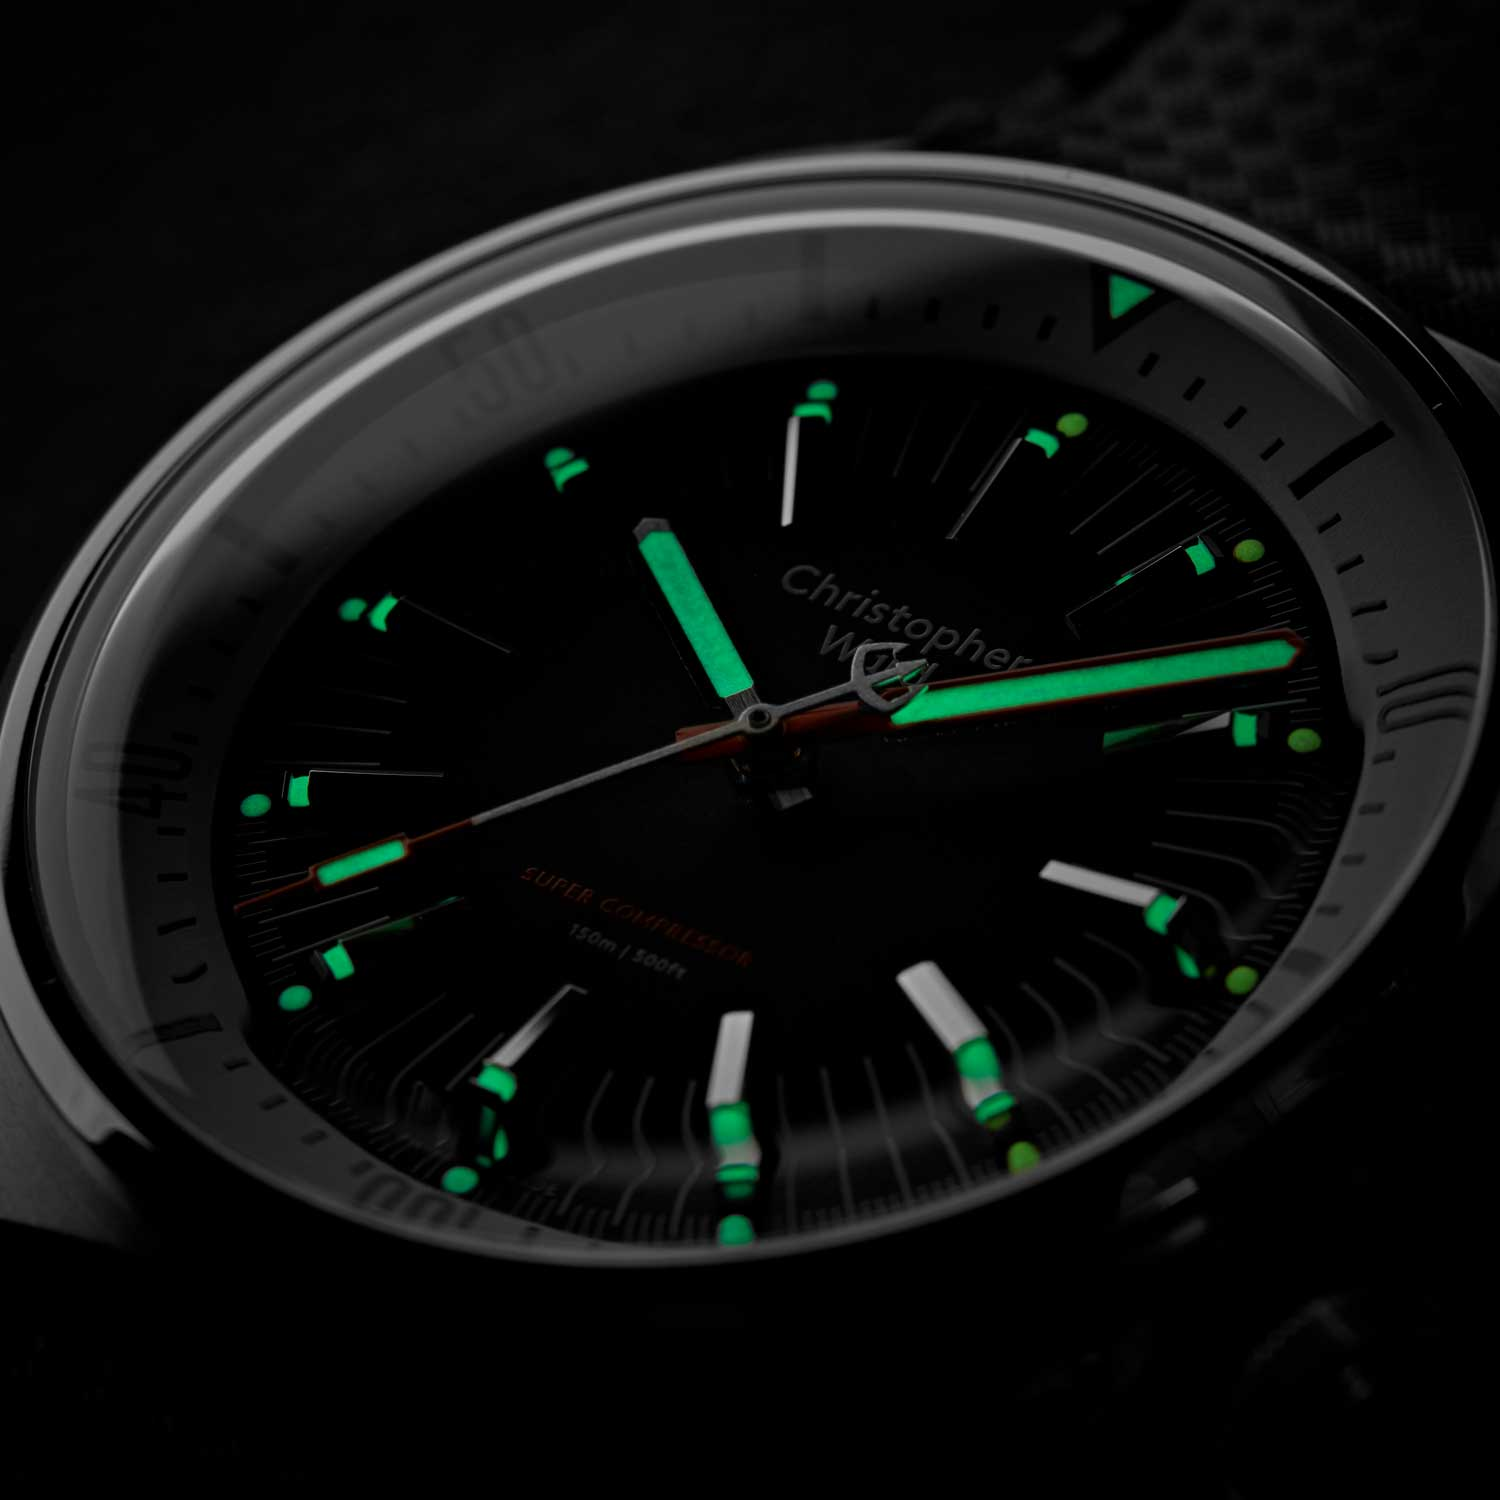 The Christopher Ward C65 showing off its lume capabilities in the dark